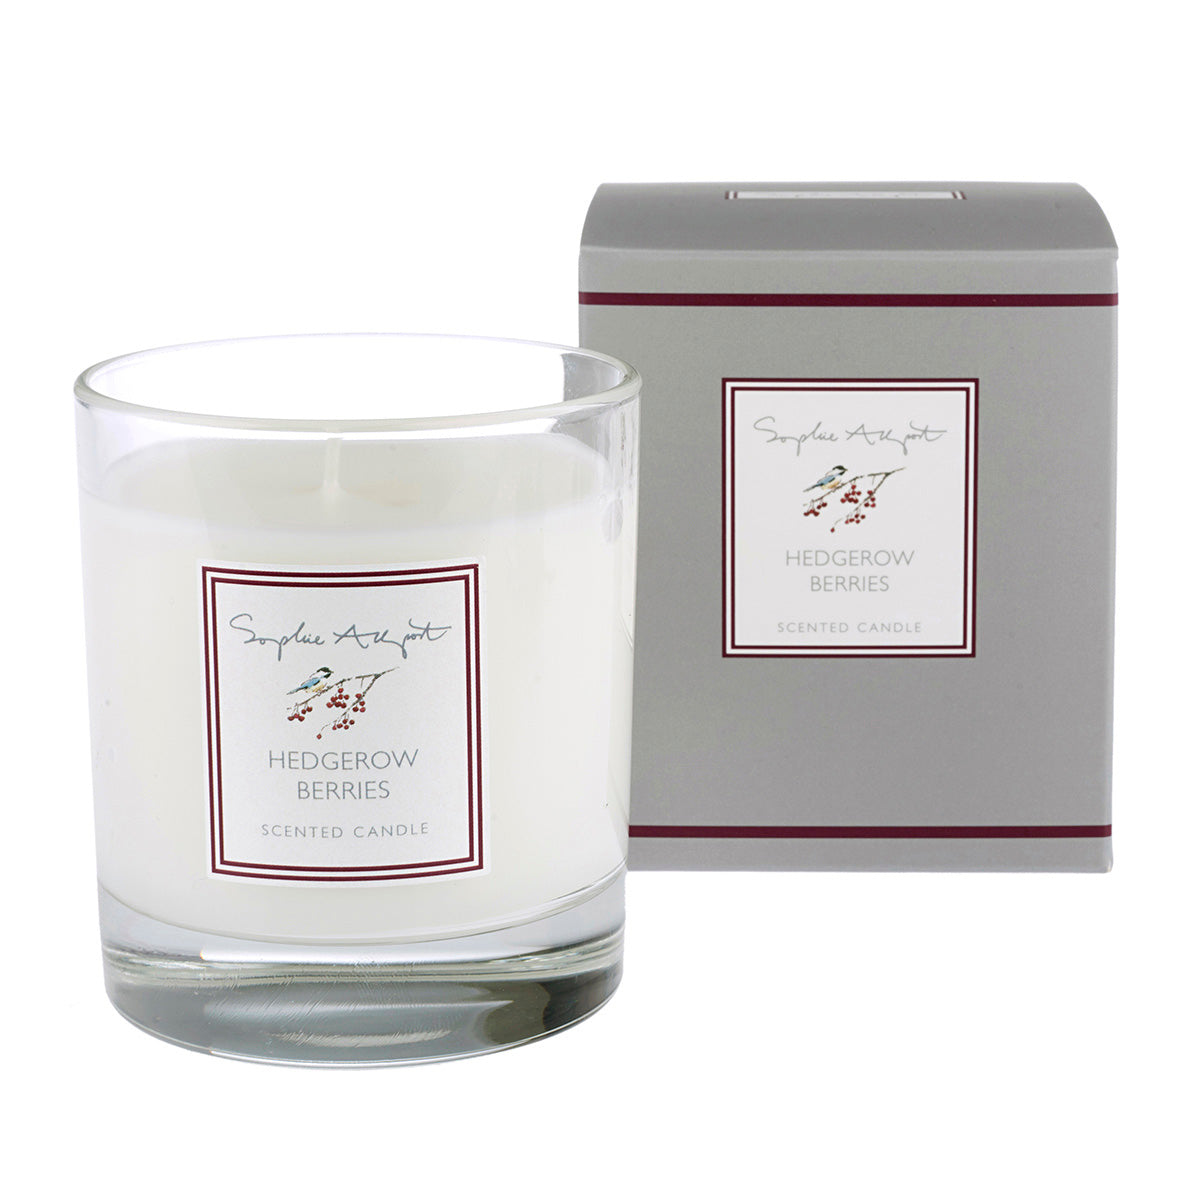 Hedgerow Berries Candle - 220g